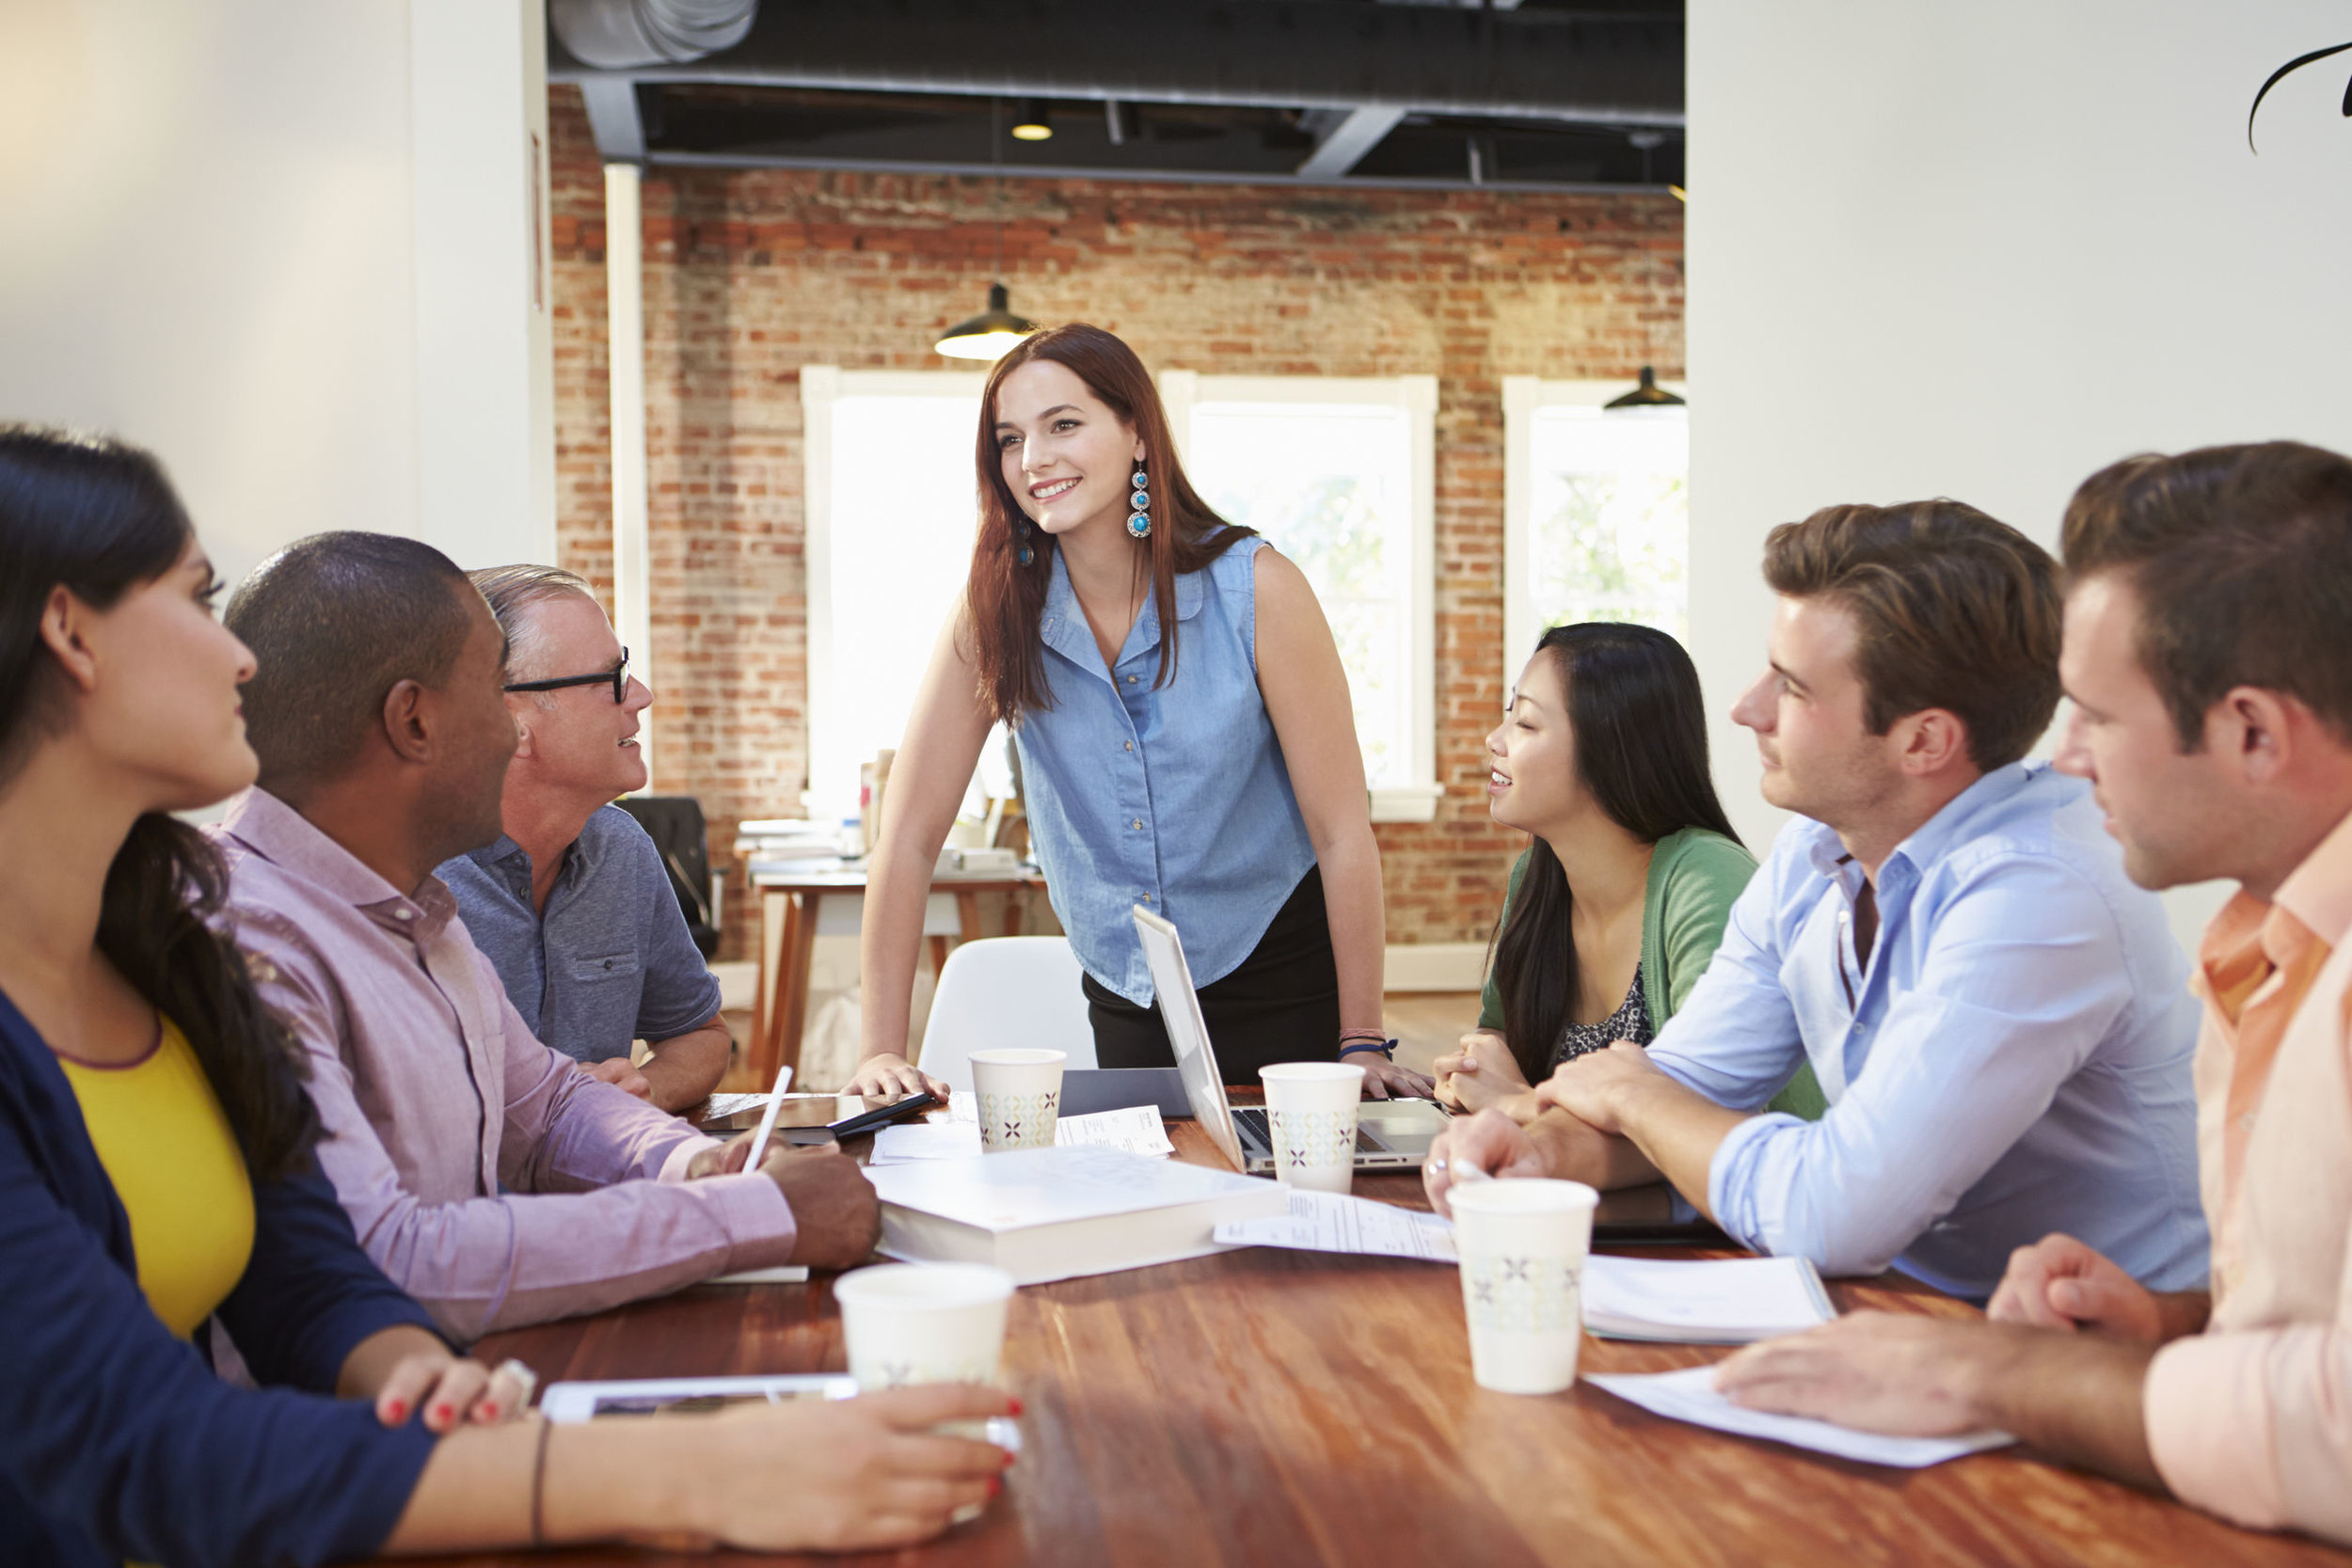 Just because managers say they want employees to be accountable doesn't mean they make it easy for their teams.